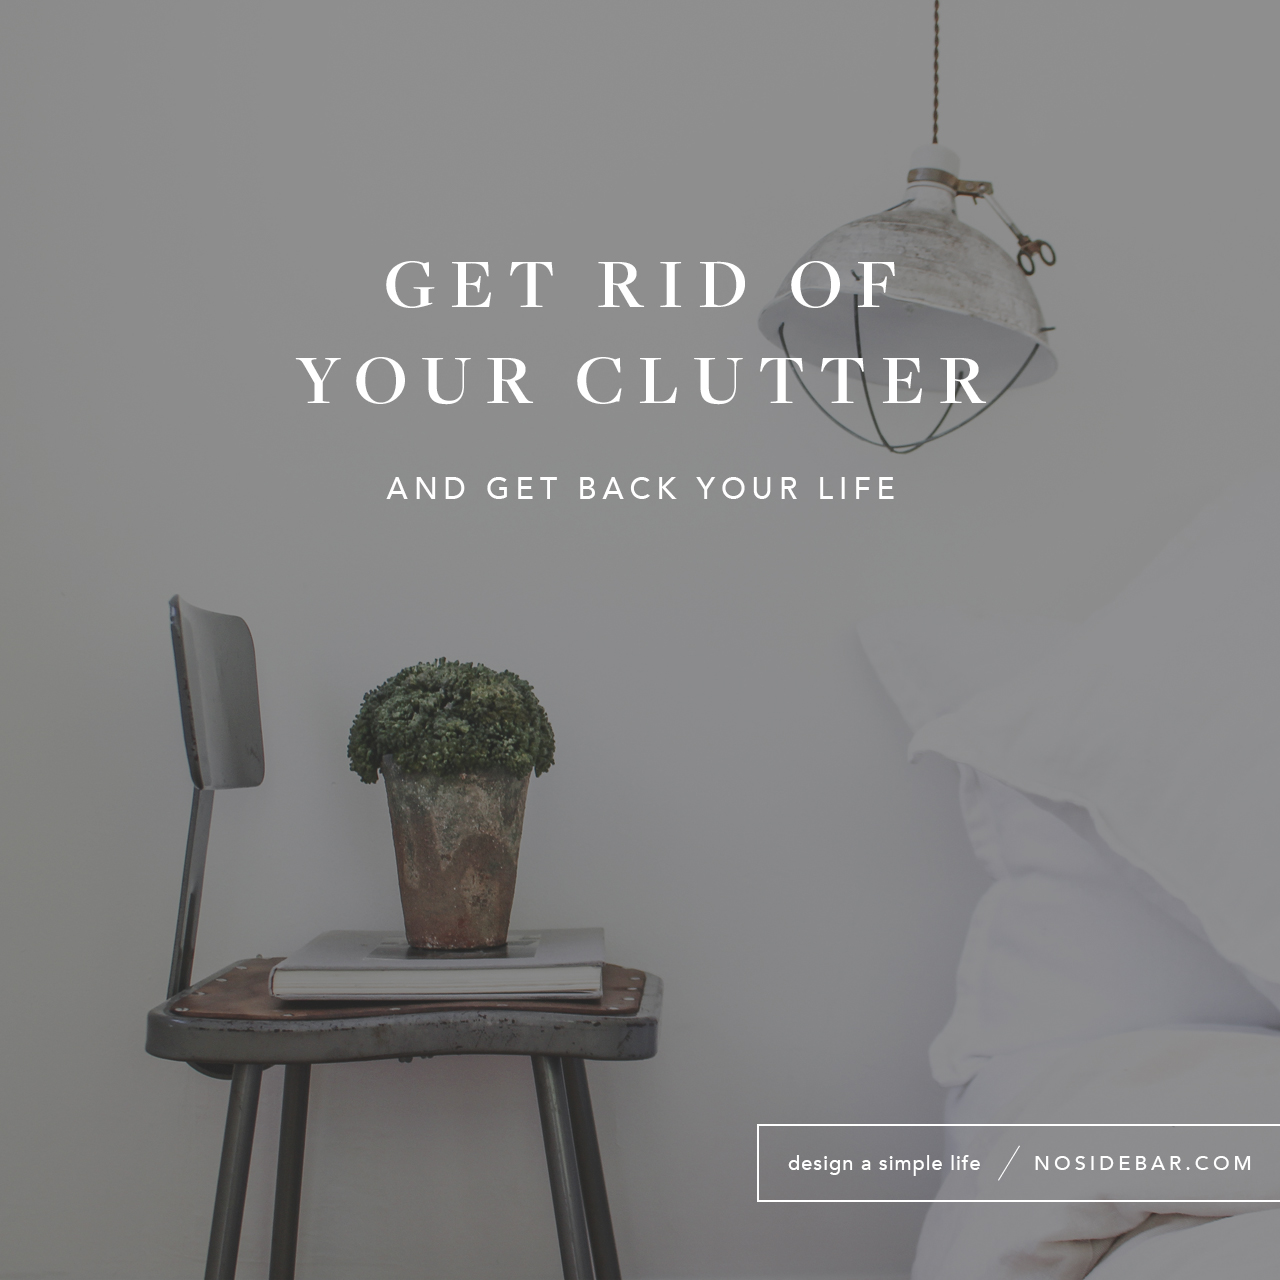 8 Ways to Get Rid of Clutter and Get Your Life Back